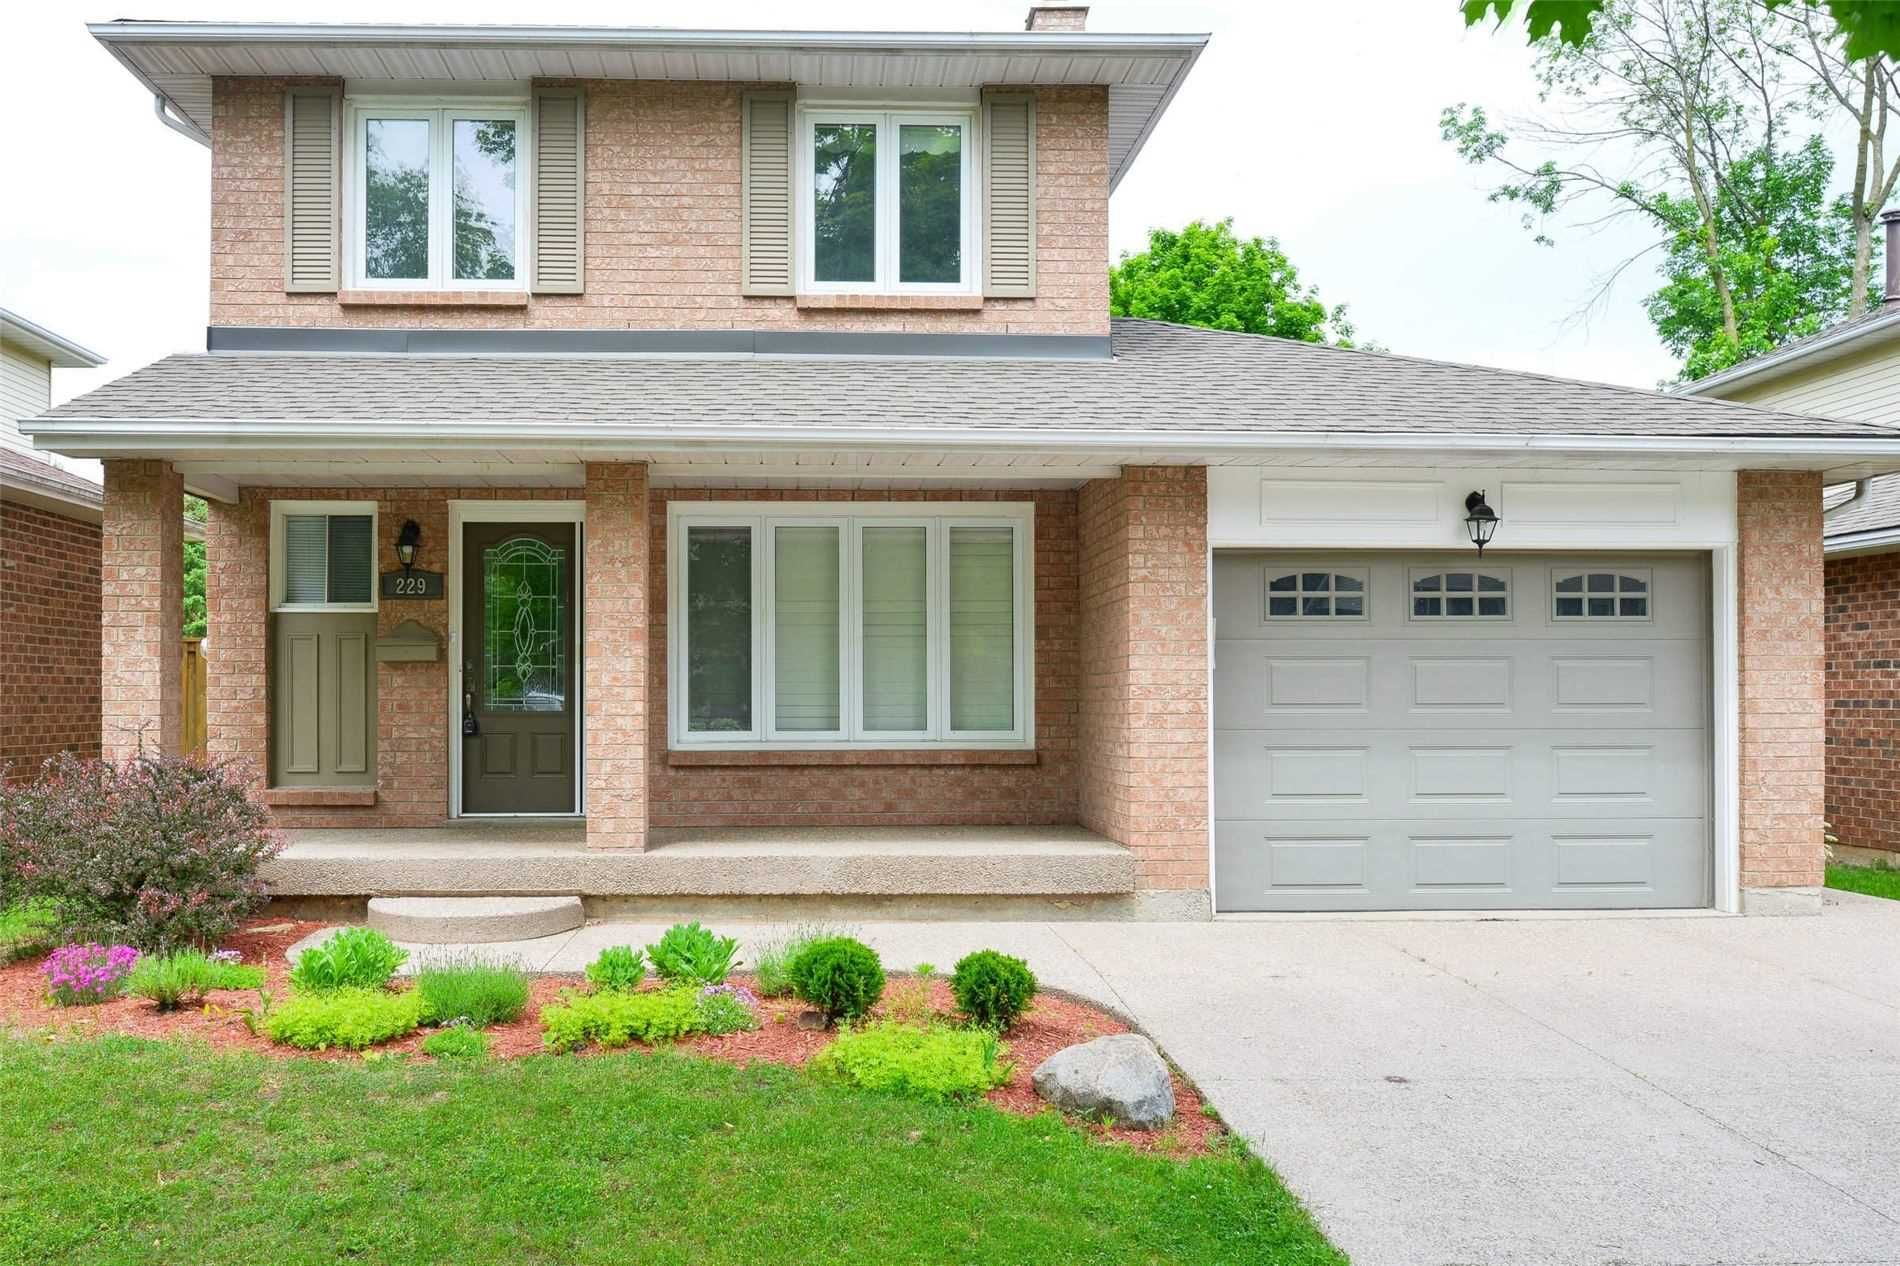 Main Photo: 229 Village Wood Road in Oakville: Bronte West House (2-Storey) for lease : MLS®# W5242624